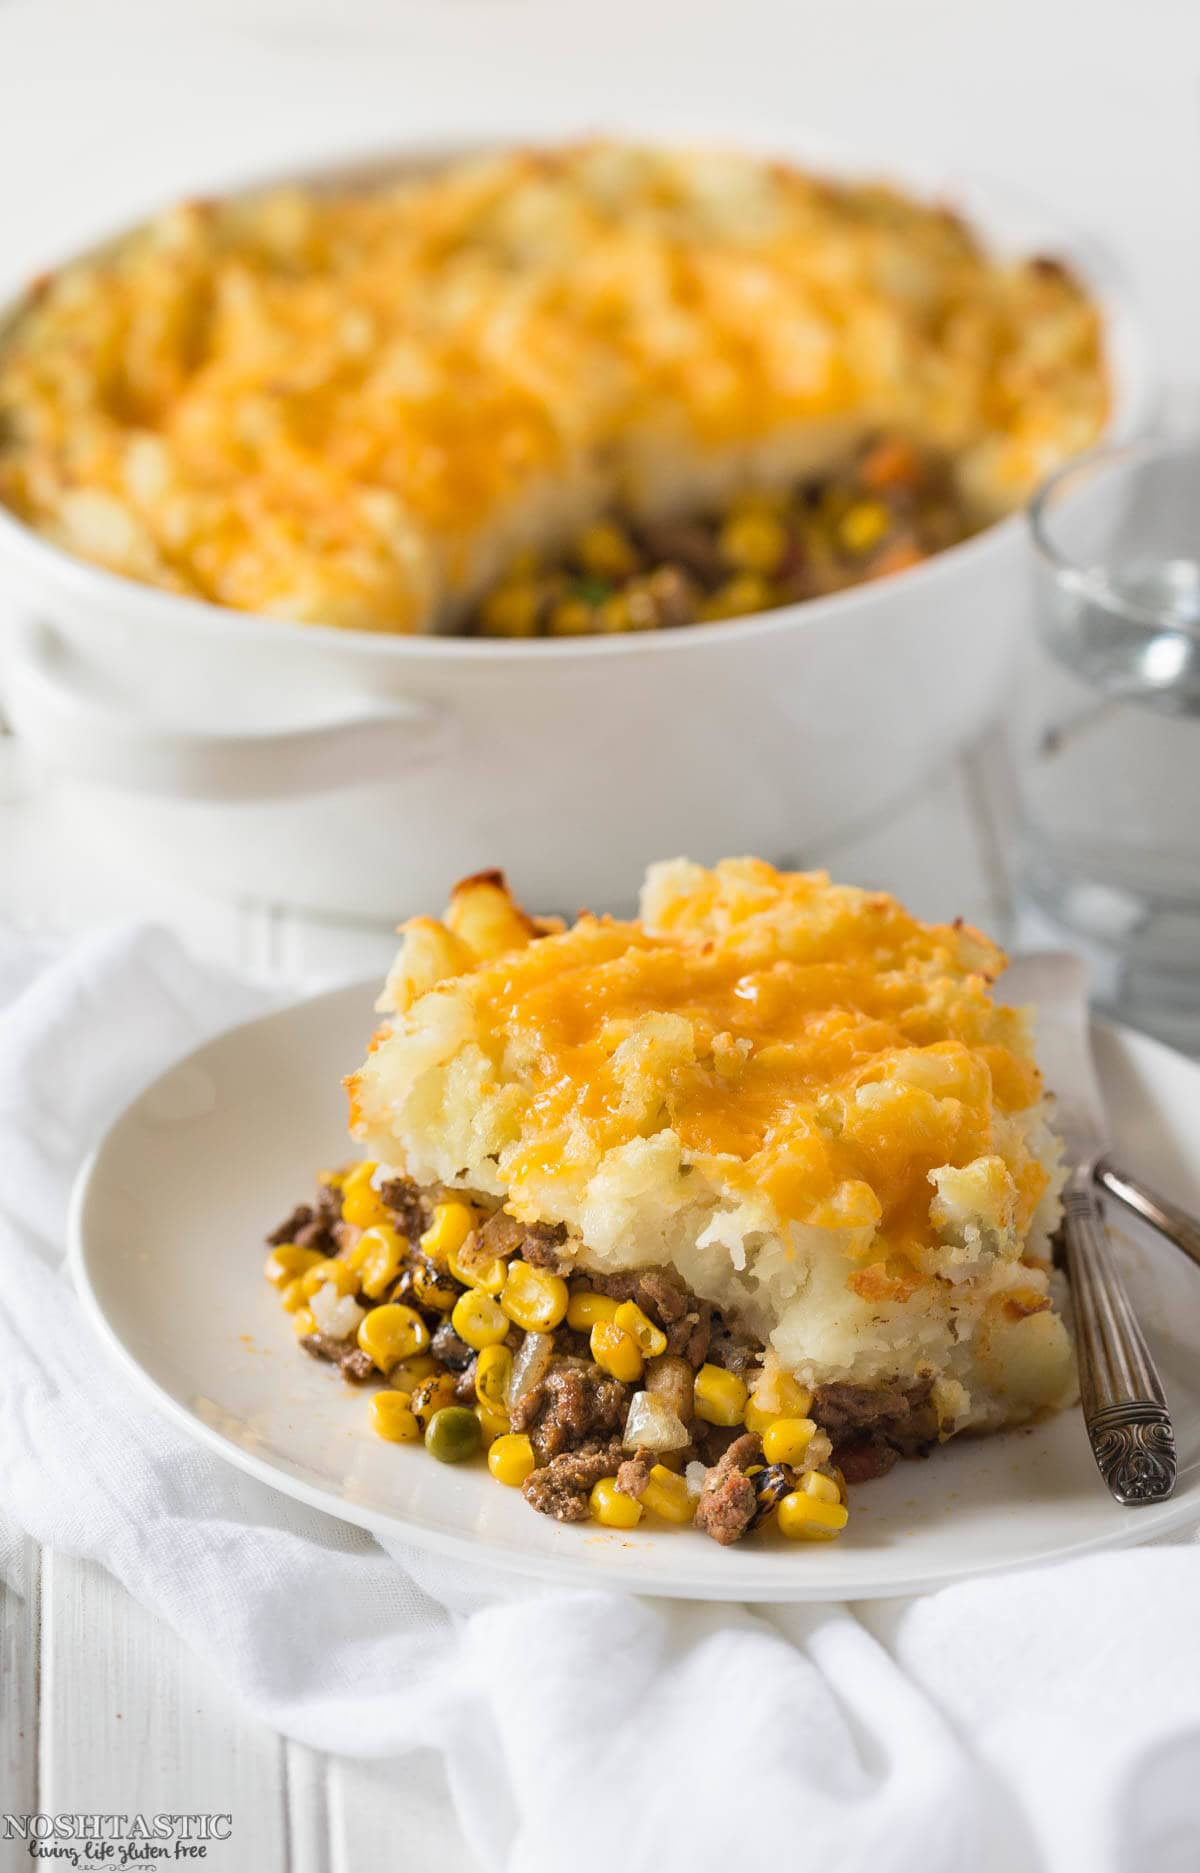 Healthy Taco Shepherd's Pie recipe with the best flavors! Paleo, whole30 and gluten free, made with ground beef and spices, cheese is optional.